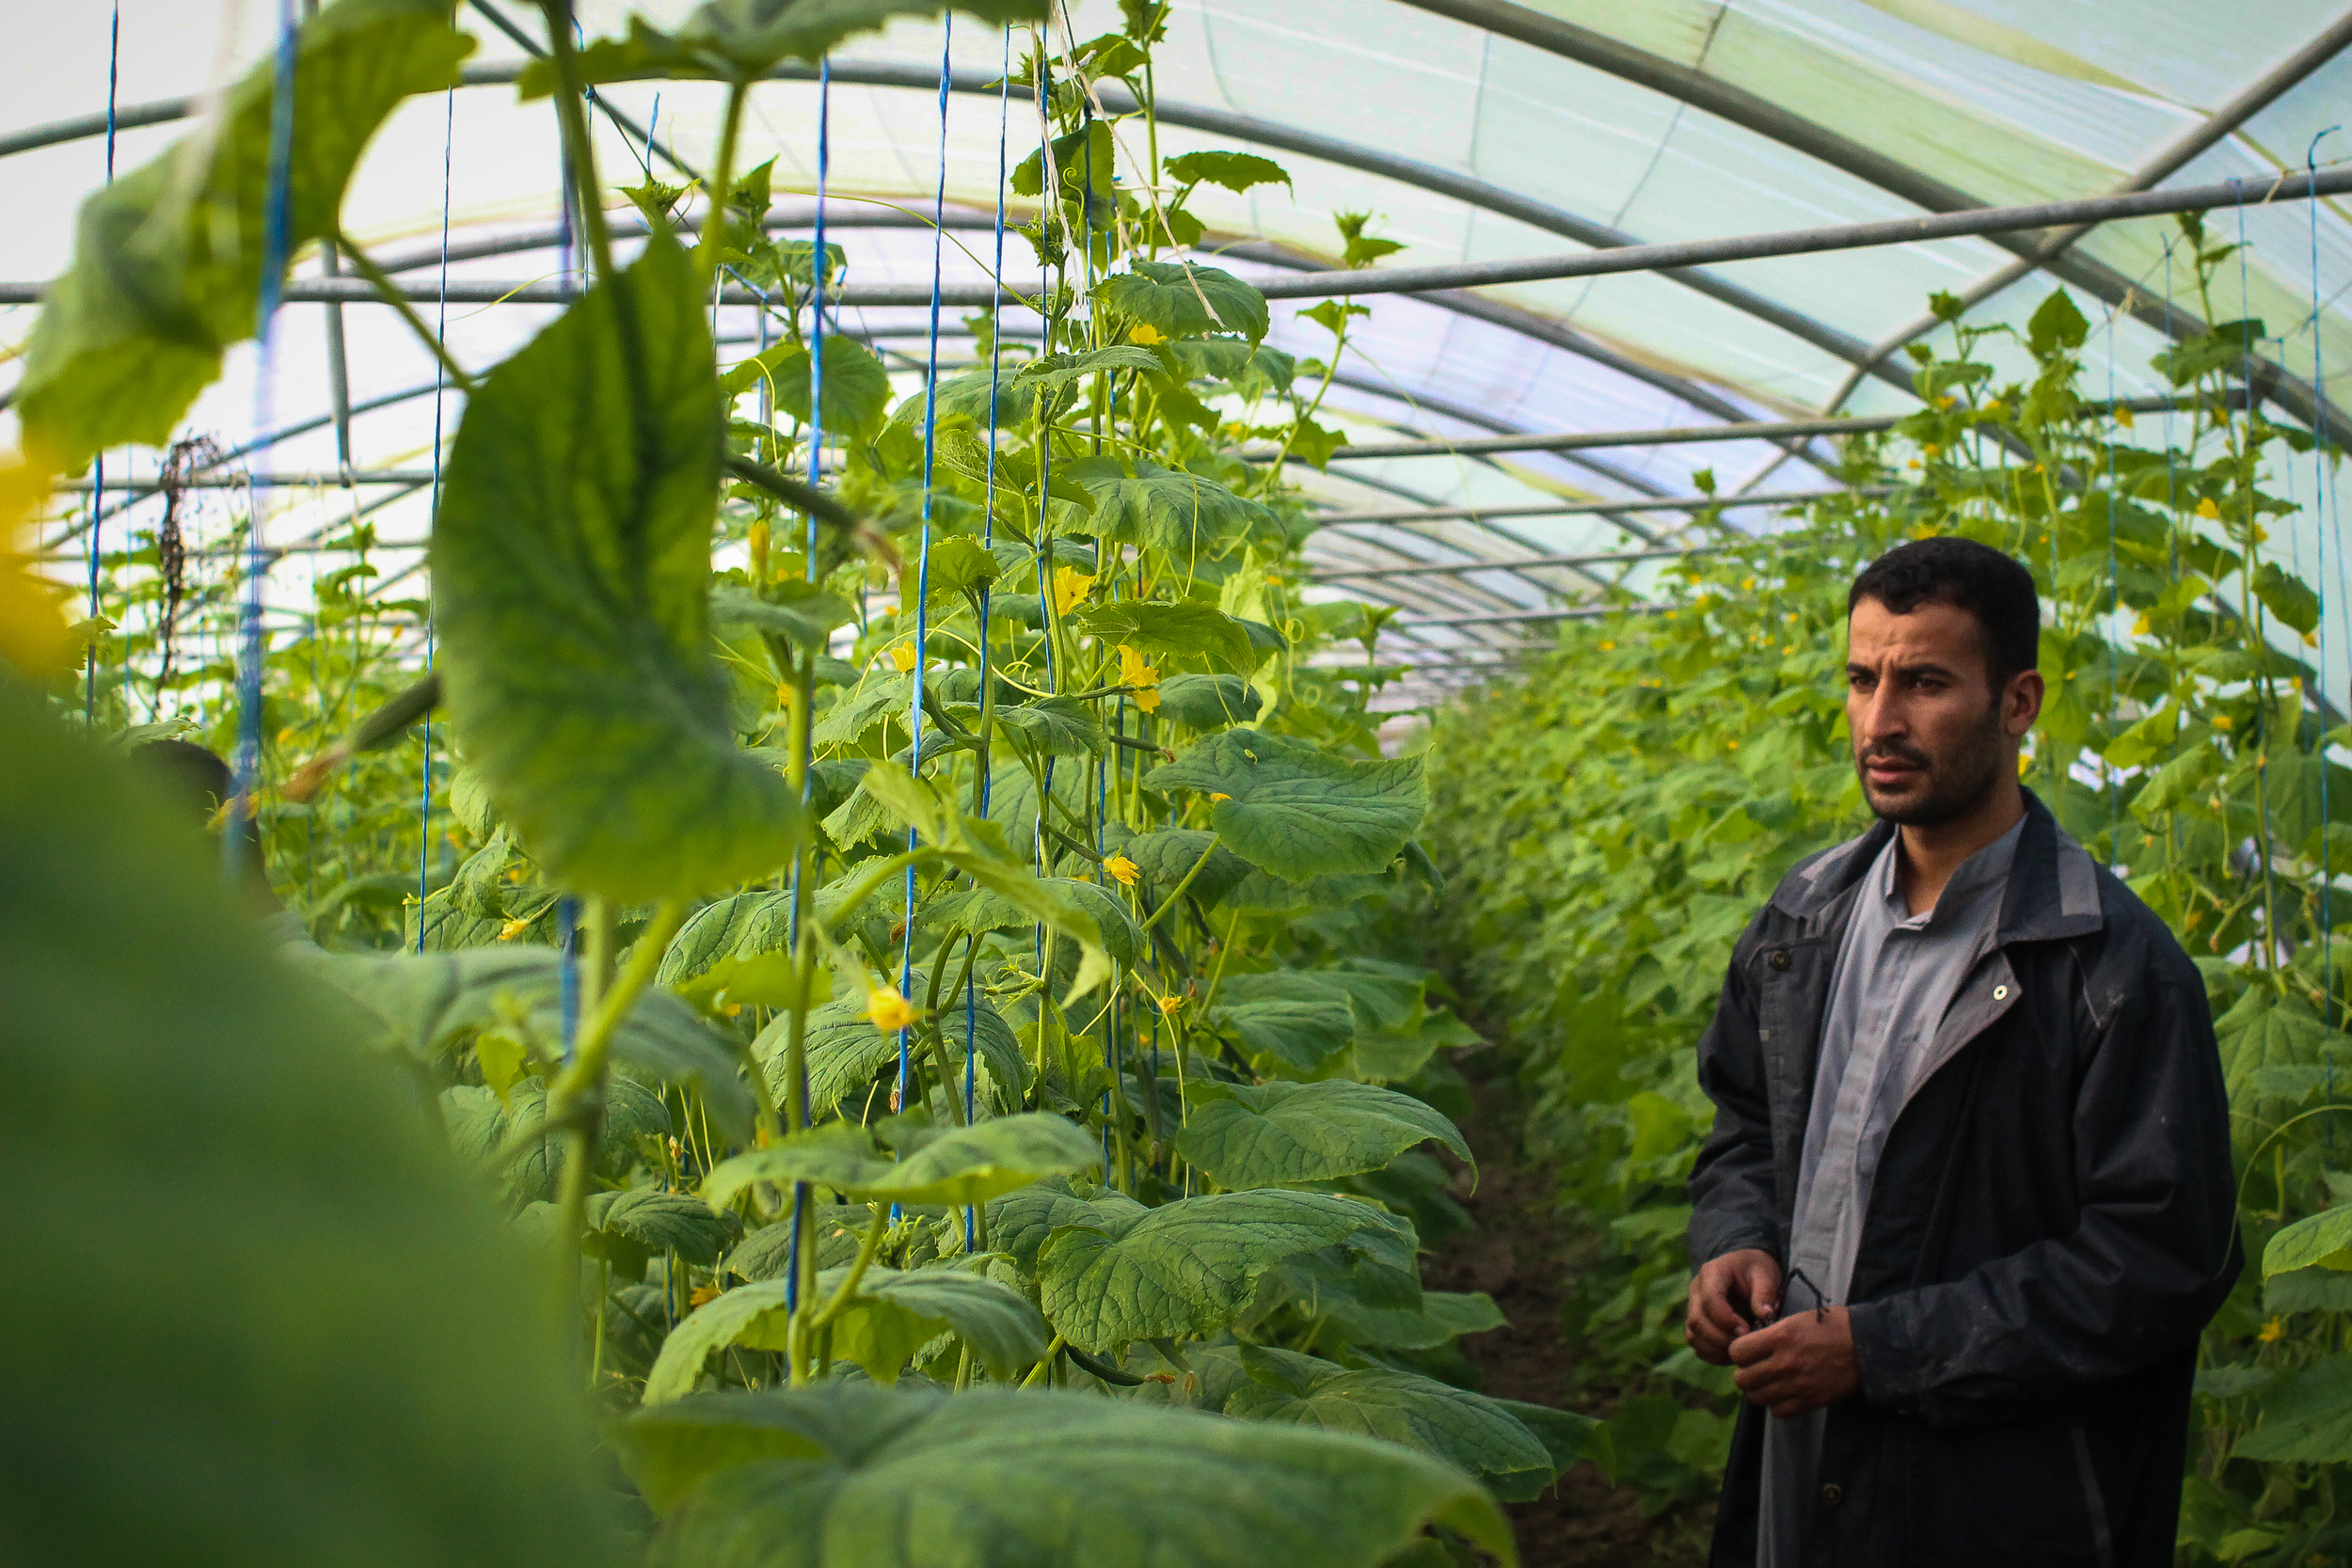 A greenhouse in Bagdhad / For the Iraq mission of the International Organization for Migration